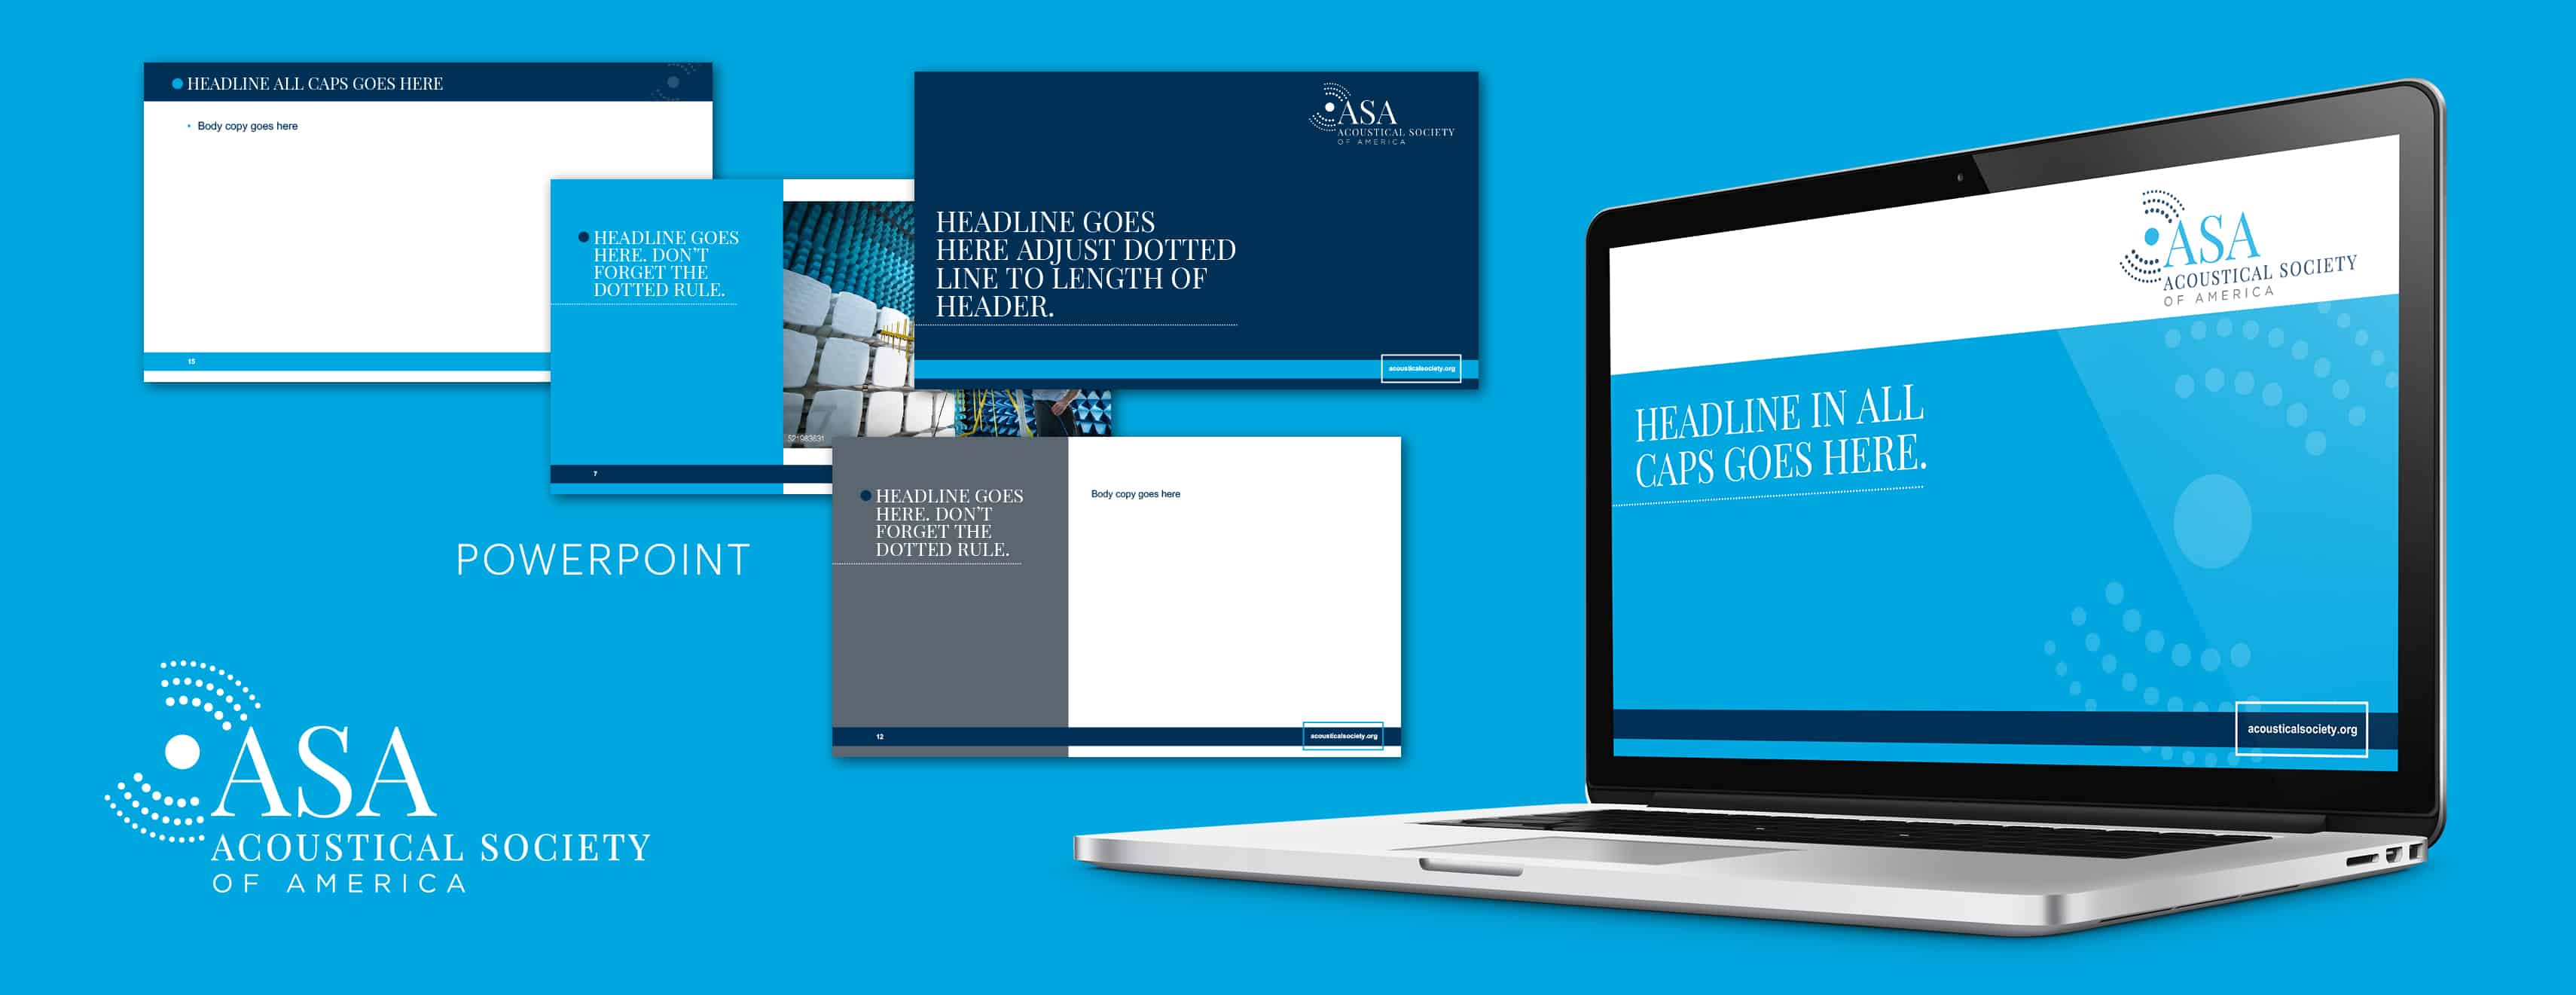 Acoustical Society of America Rebrand and Journal Redesign - acoustical society of america